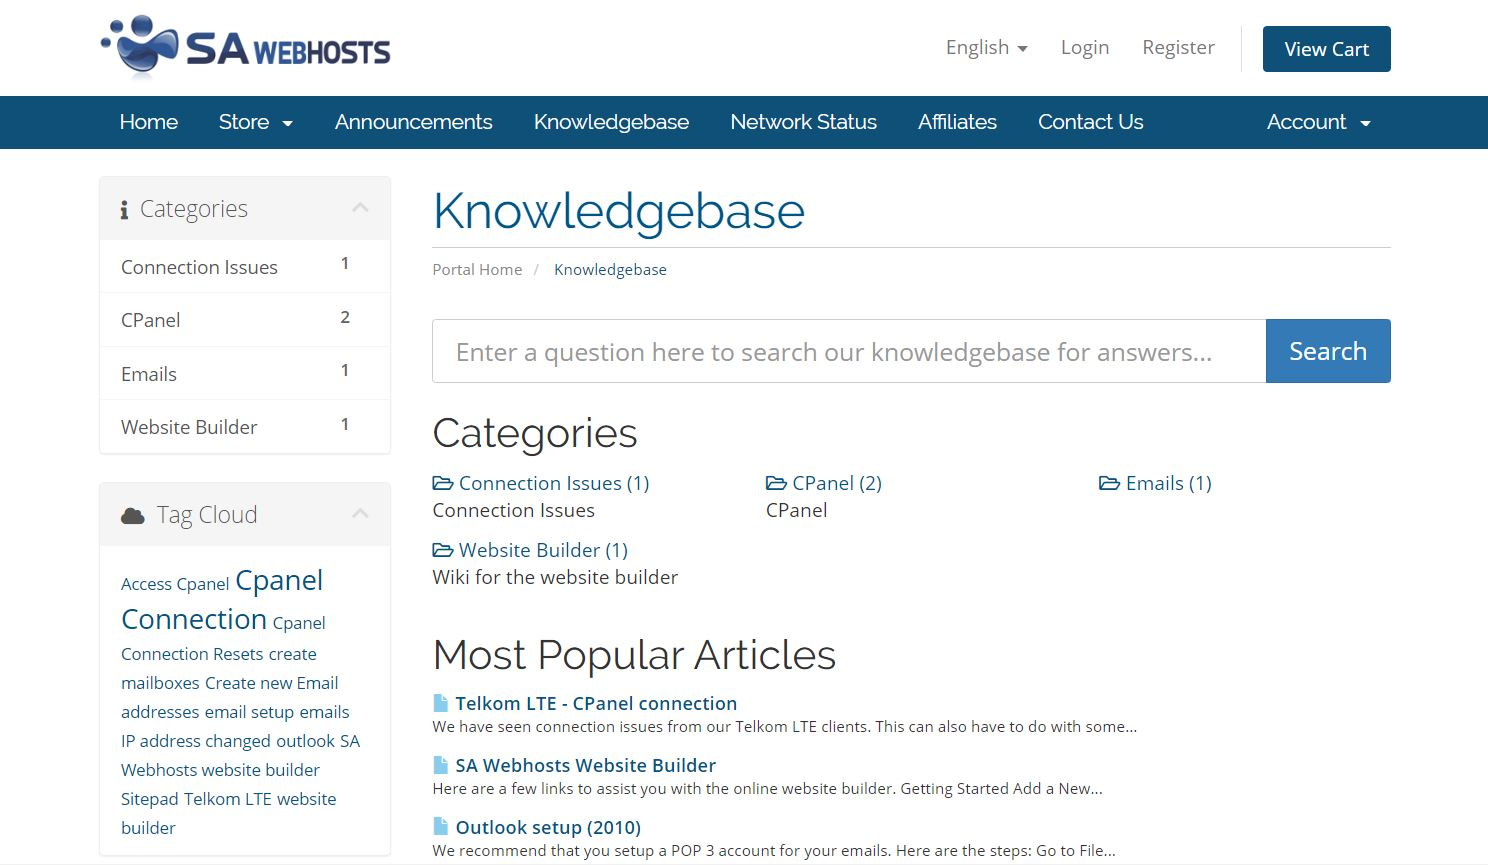 SA Webhosts Knowledgebase